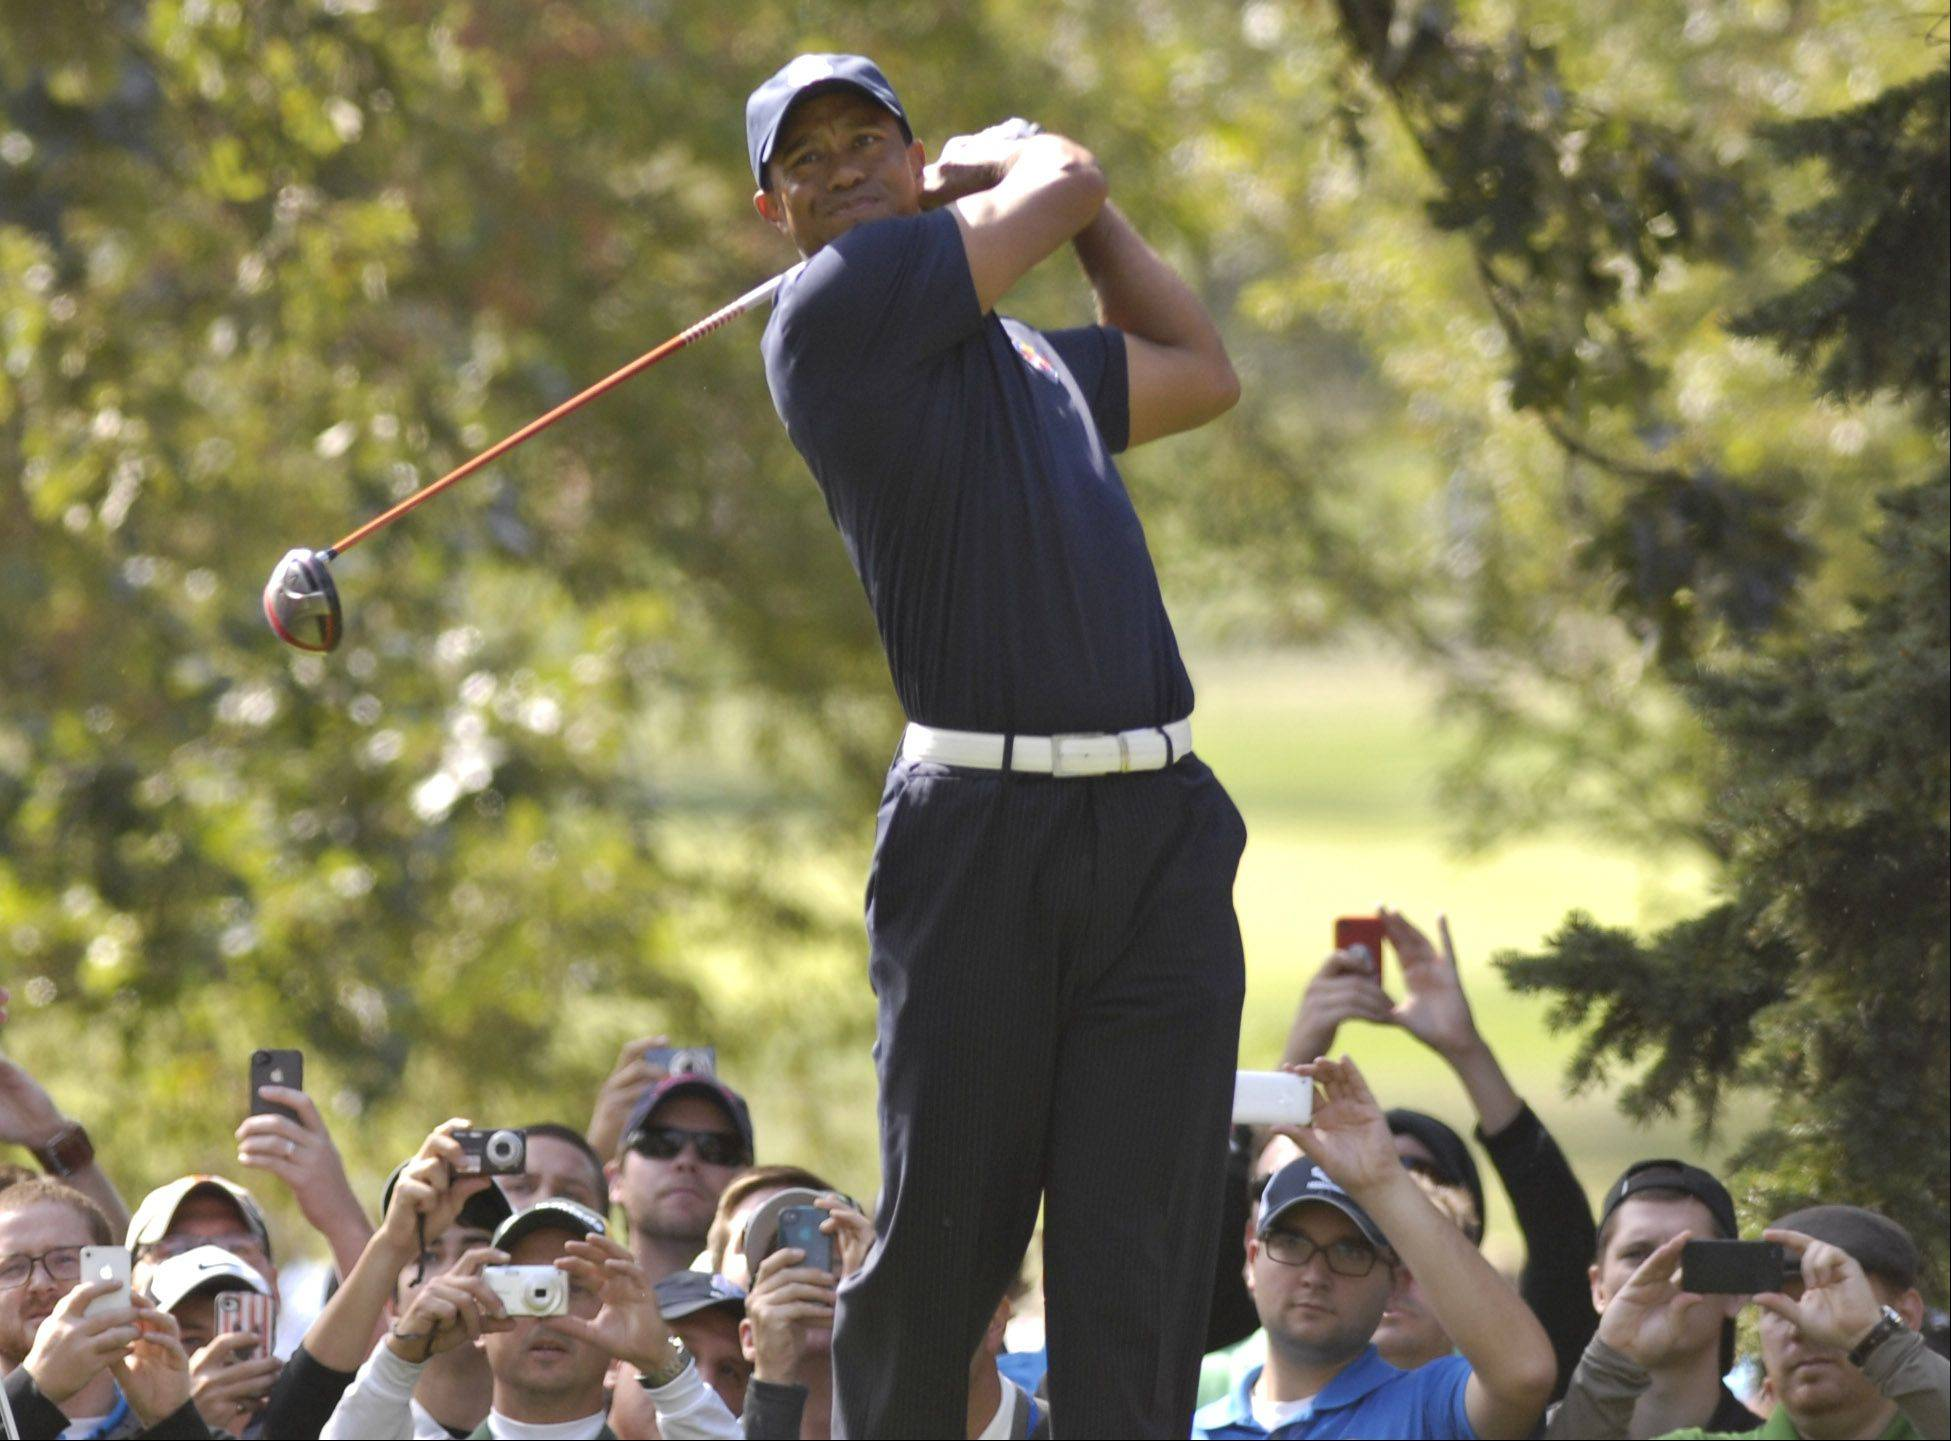 With a sea of camera-toting fans behind him, Tiger Woods watches a tee shot.